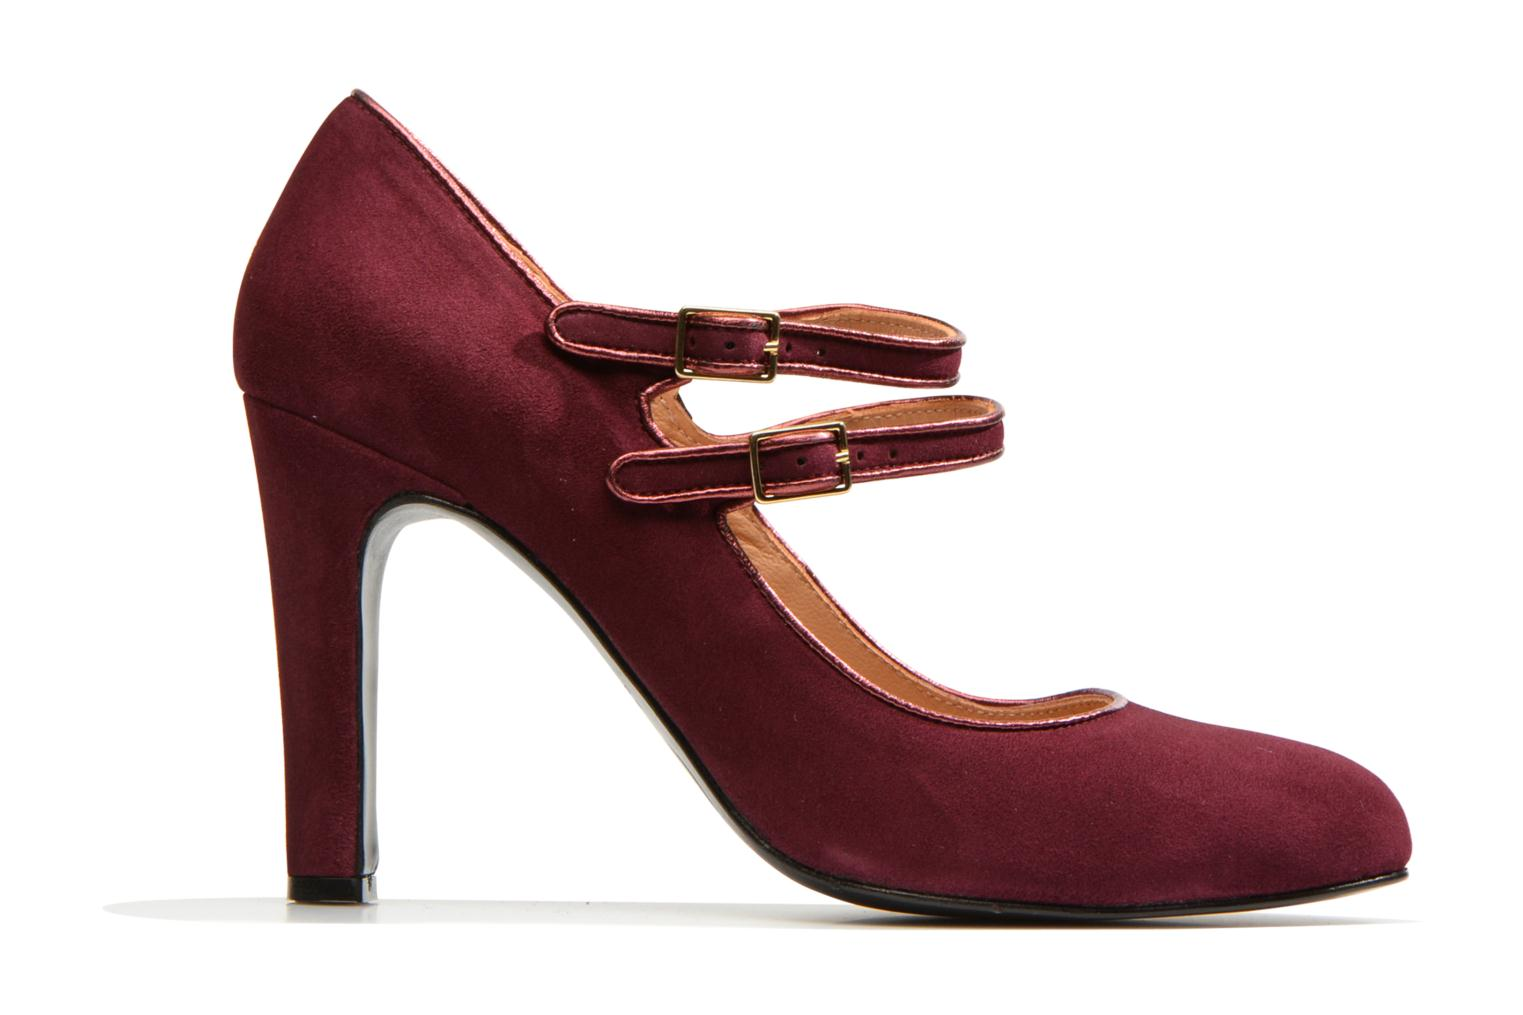 Pumps Flore Thirties #8 by SARENZA